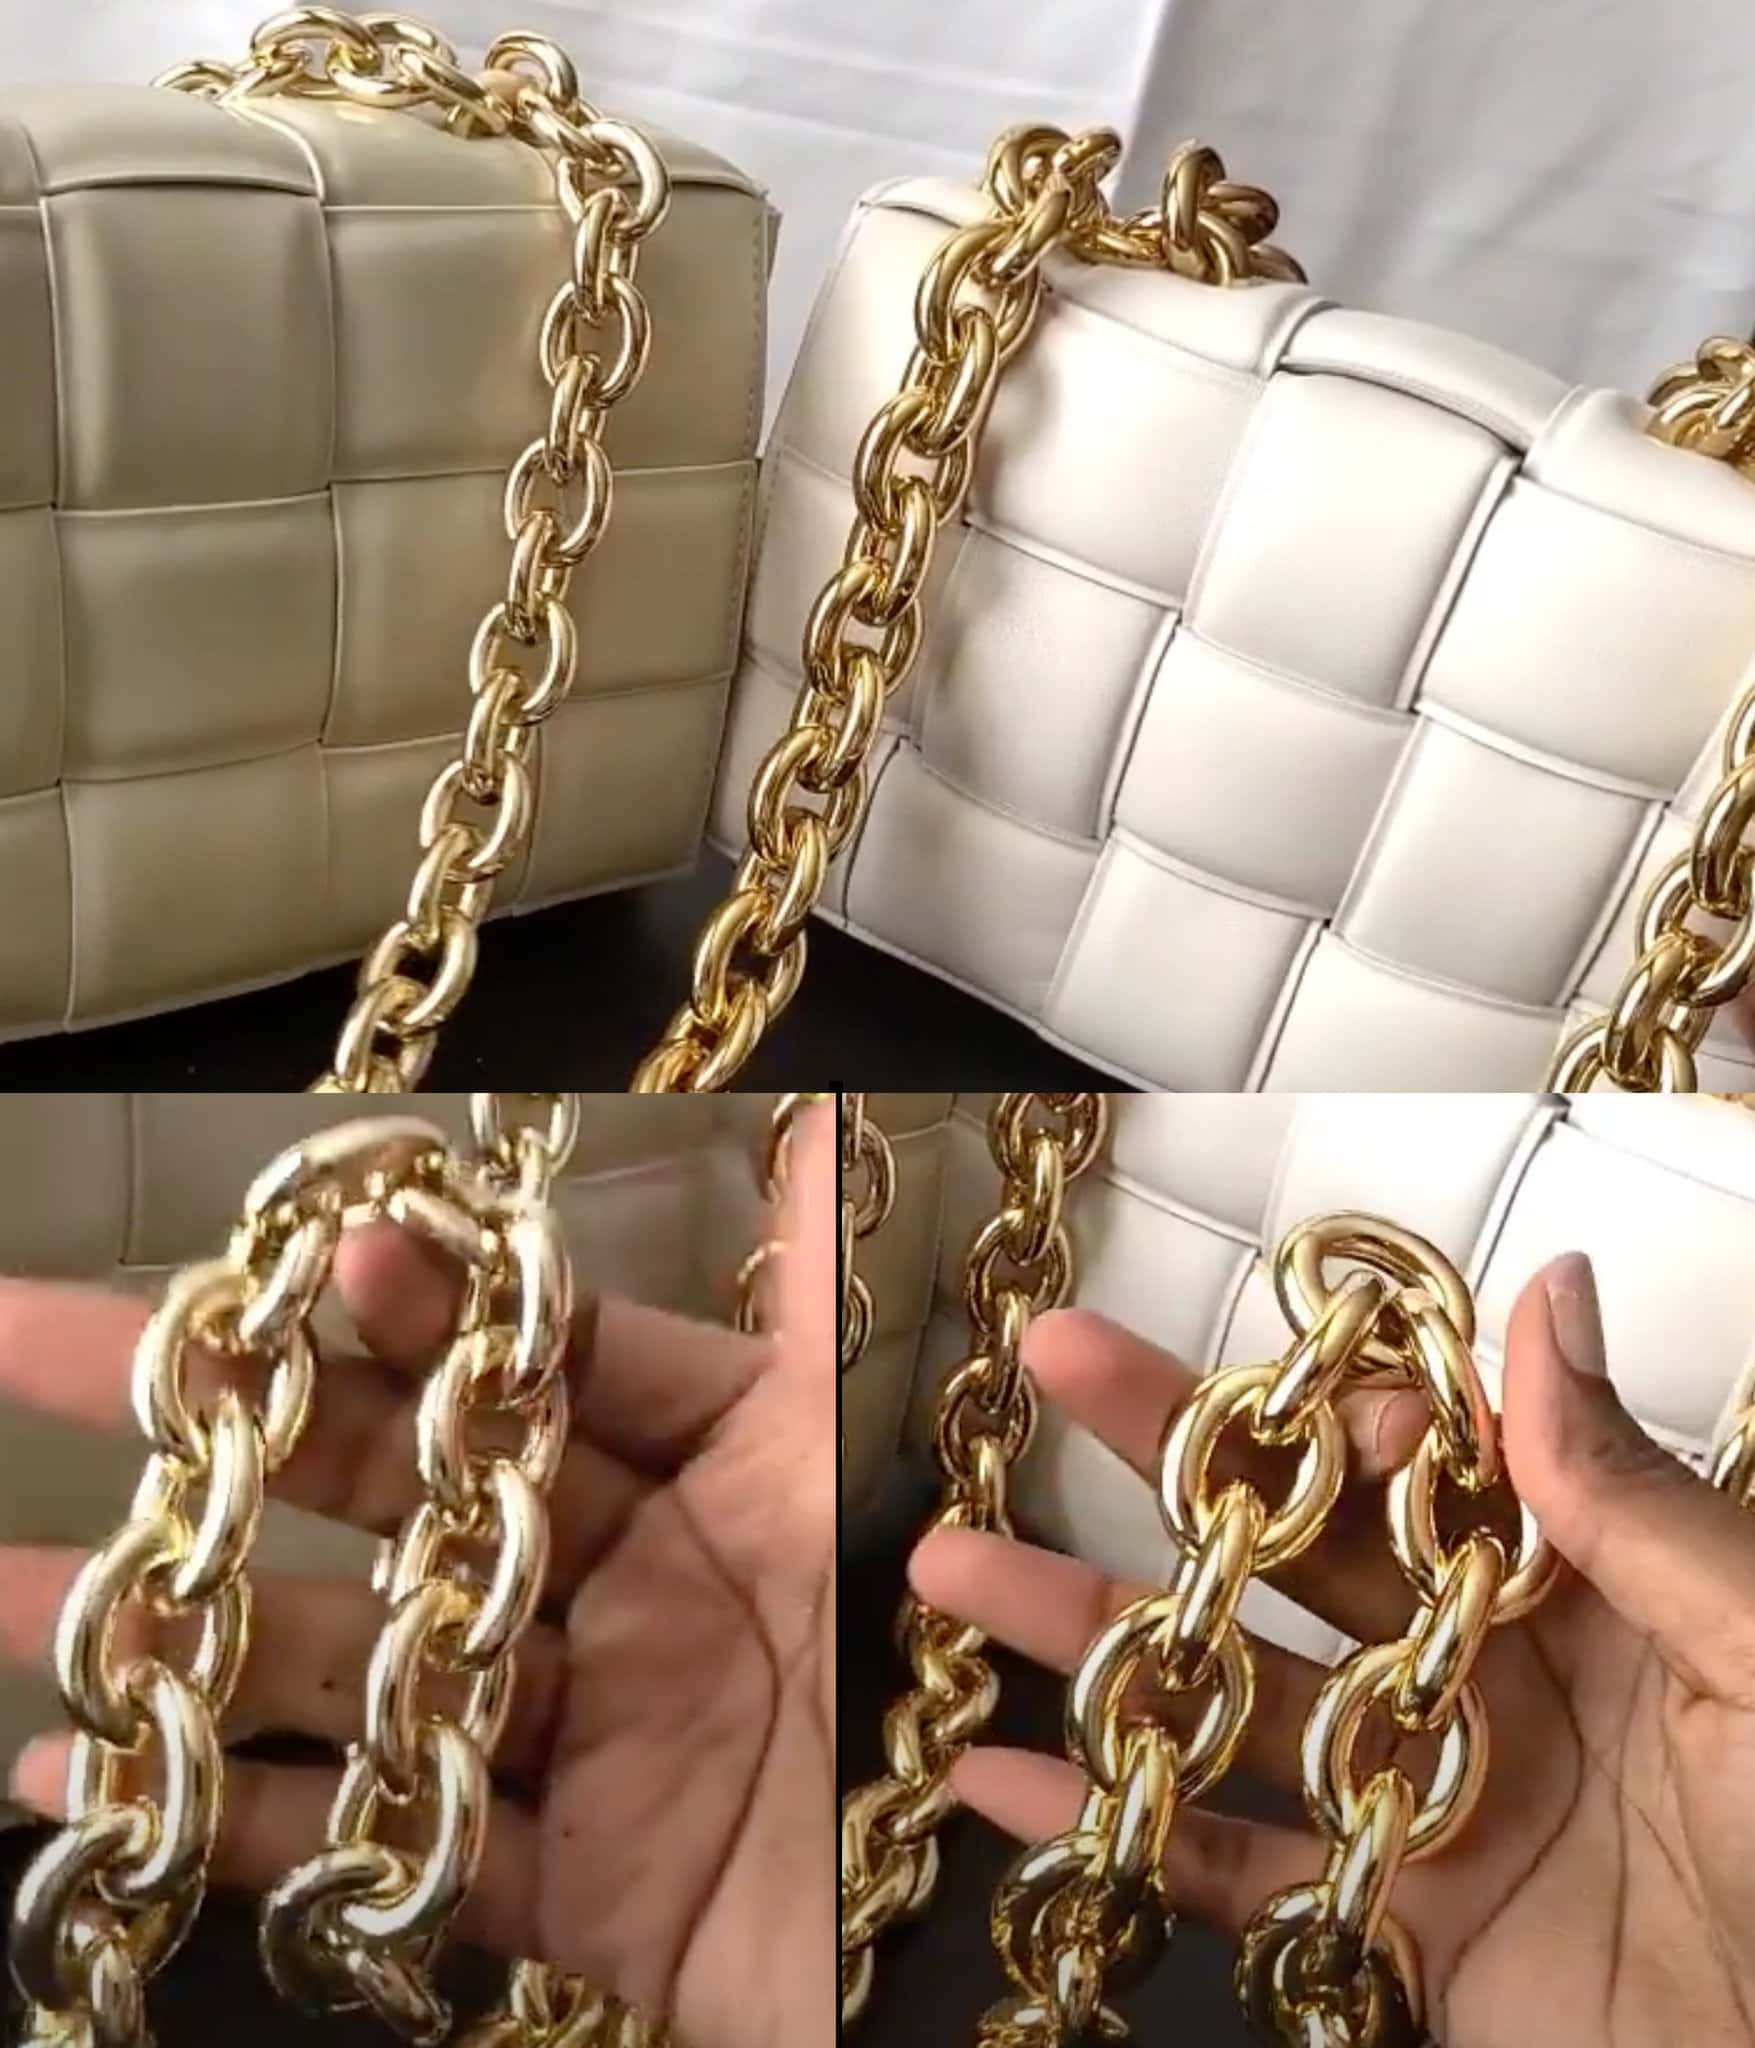 A fake Bottega Veneta bag (left) has a lighter chain strap, in terms of both shade and weight, while a real Bottega Veneta bag (right) has a bright and heavy chain strap